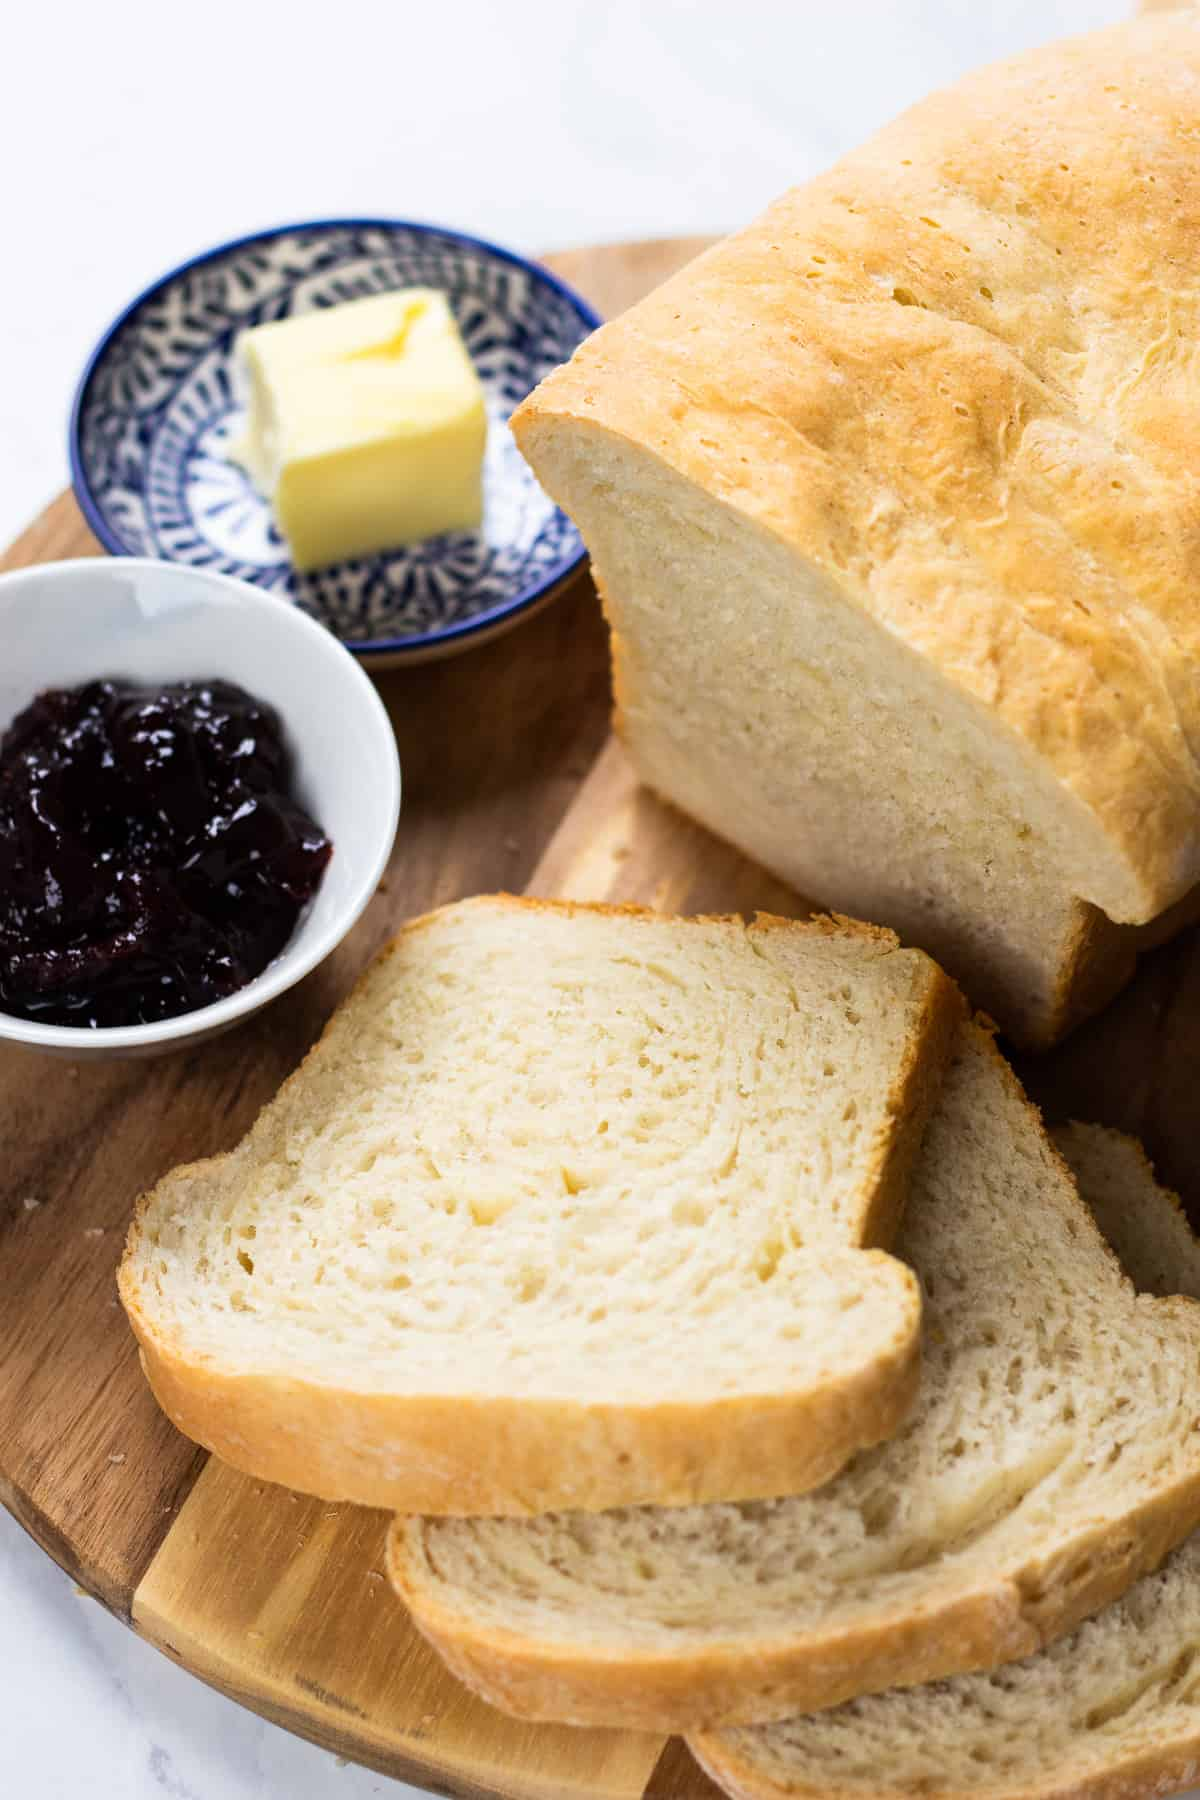 Sliced white bread on a board with butter and jam.